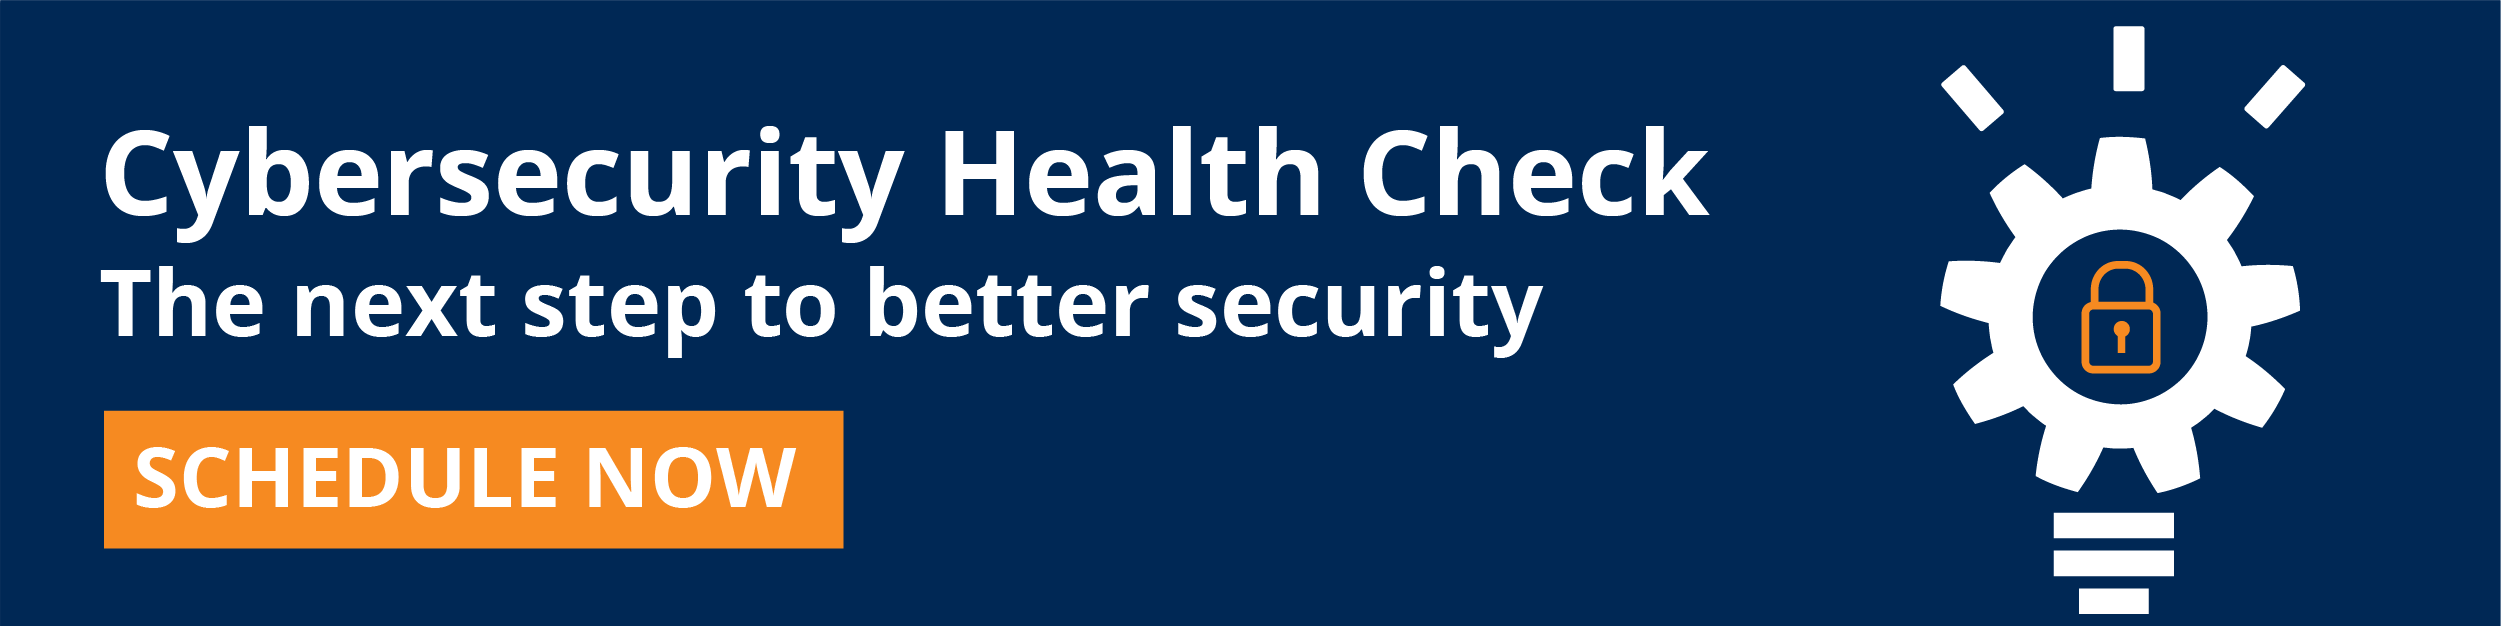 Cybersecurity Health Check_TEMPLATE 10